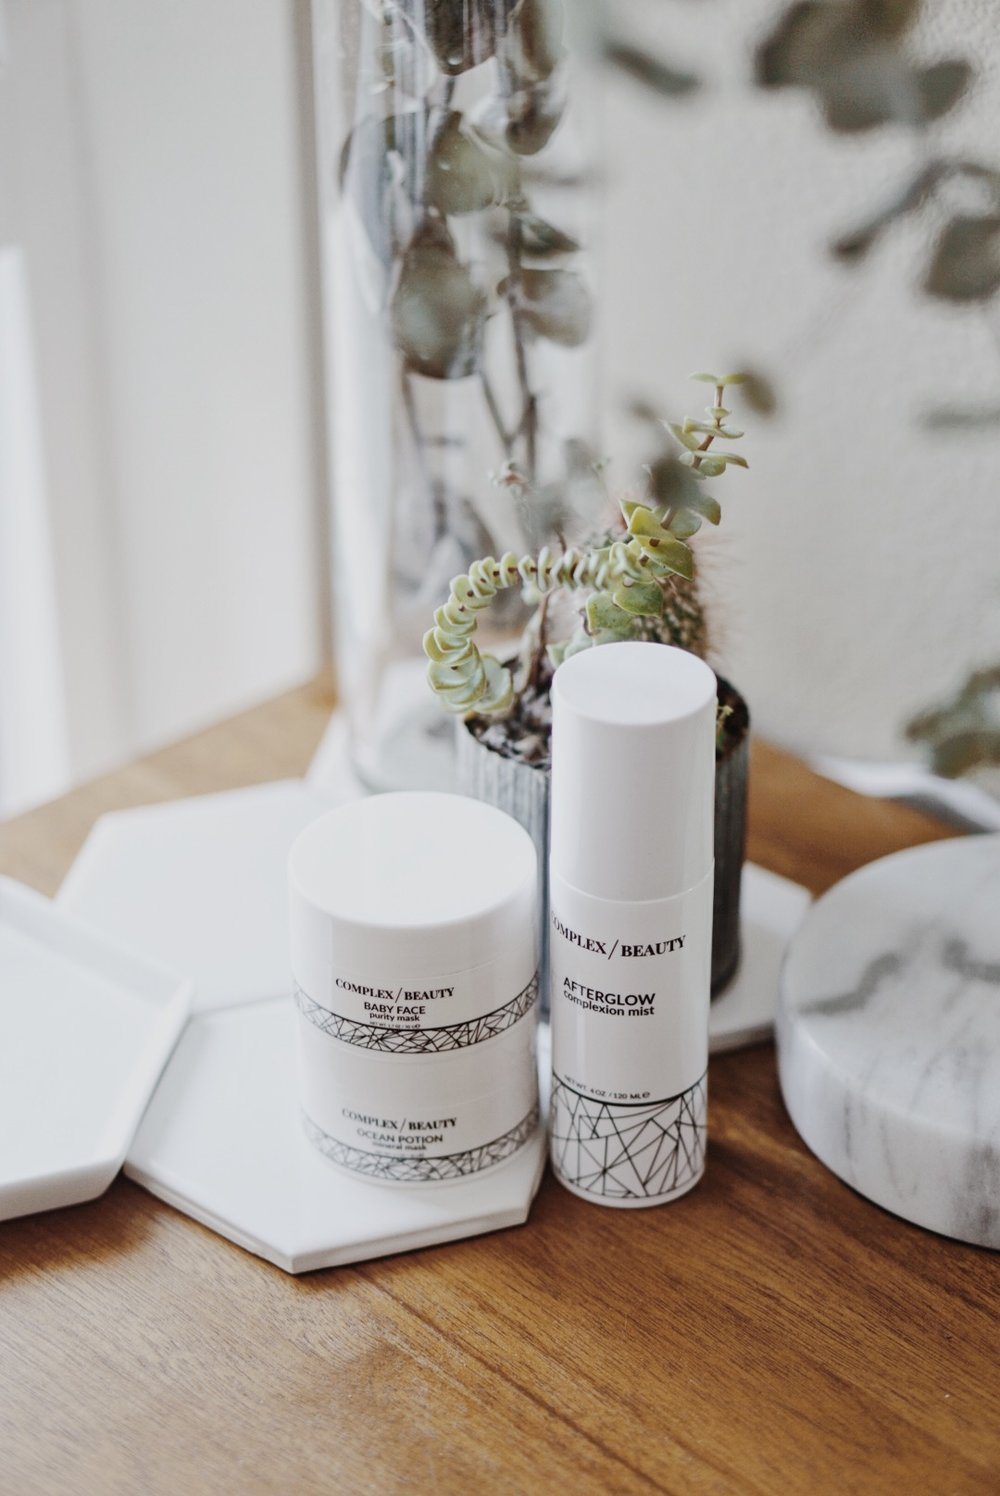 Complex Beauty Skincare Giveaway